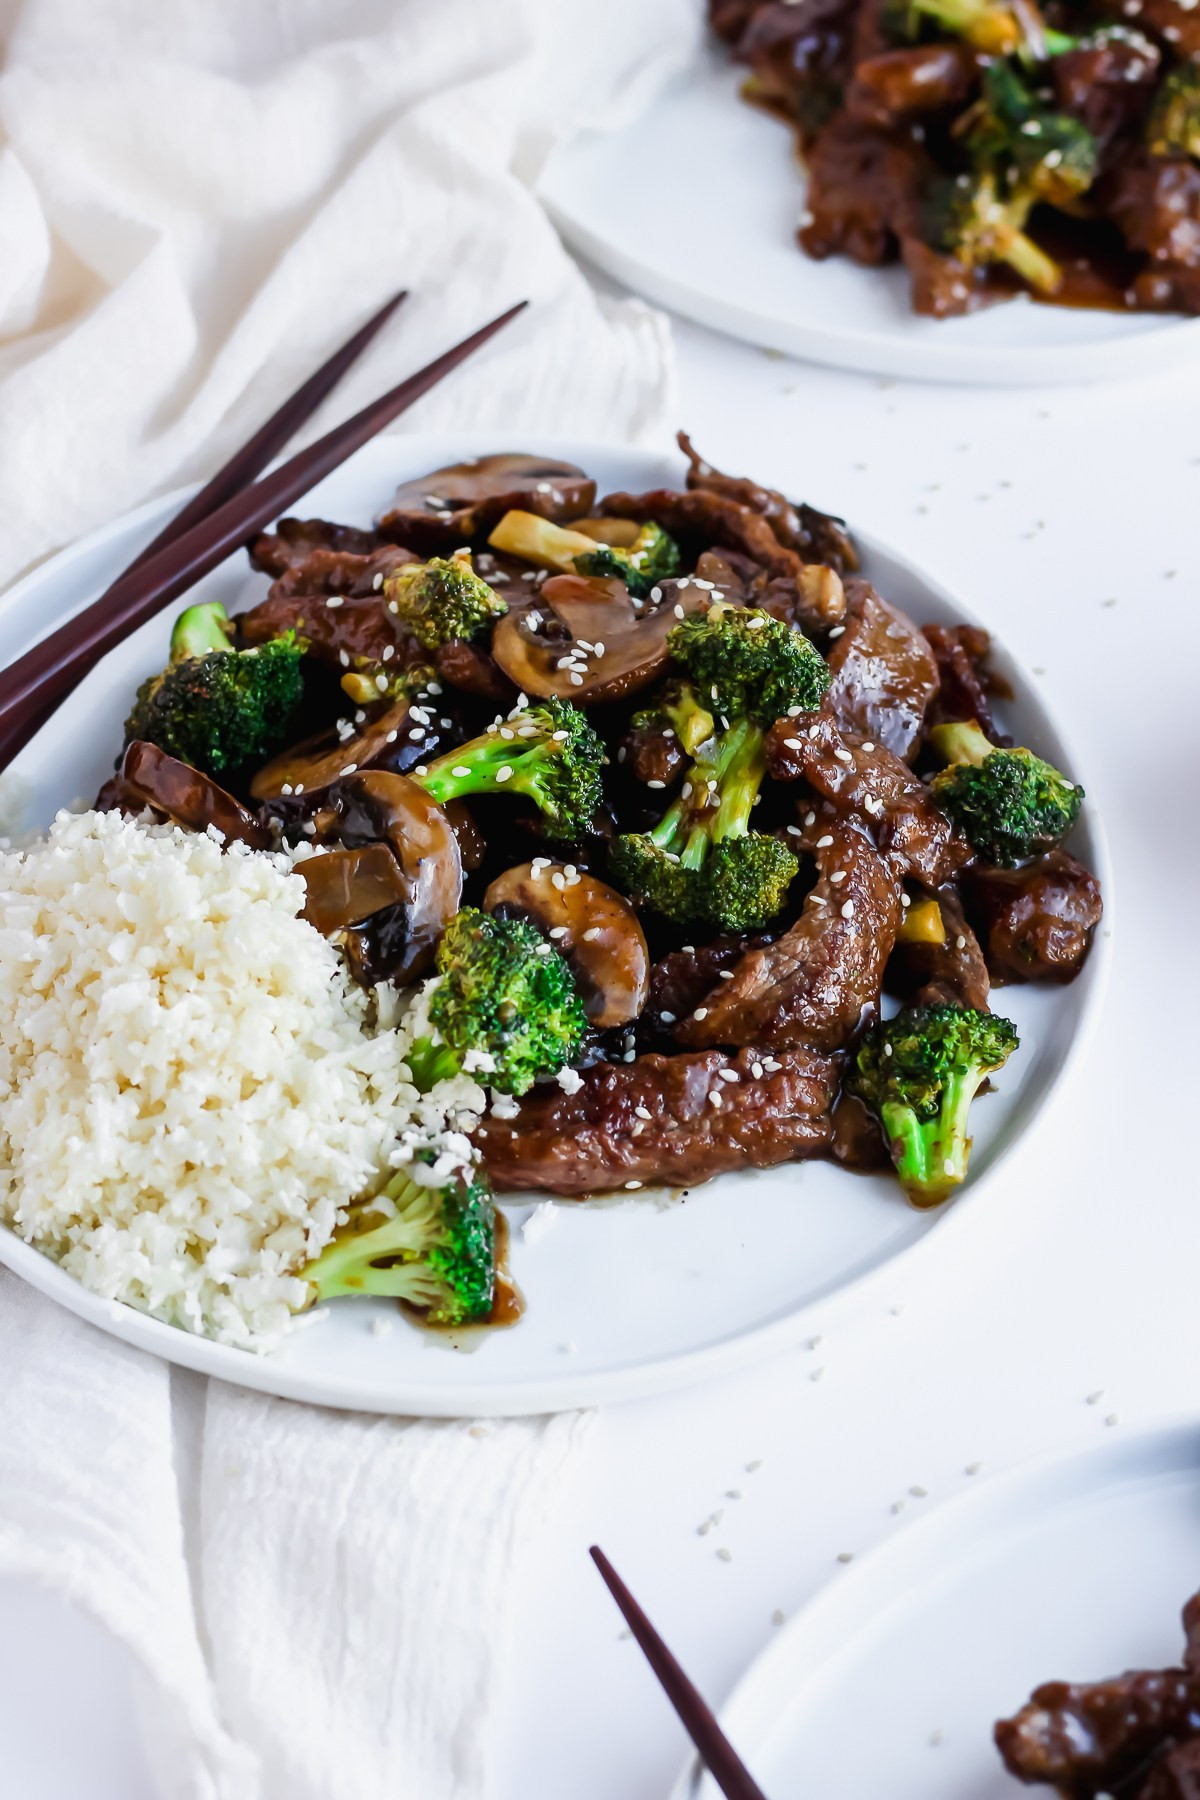 Beef And Broccoli Sauce Mix  Beef and Broccoli Stir Fry The Wooden Skillet